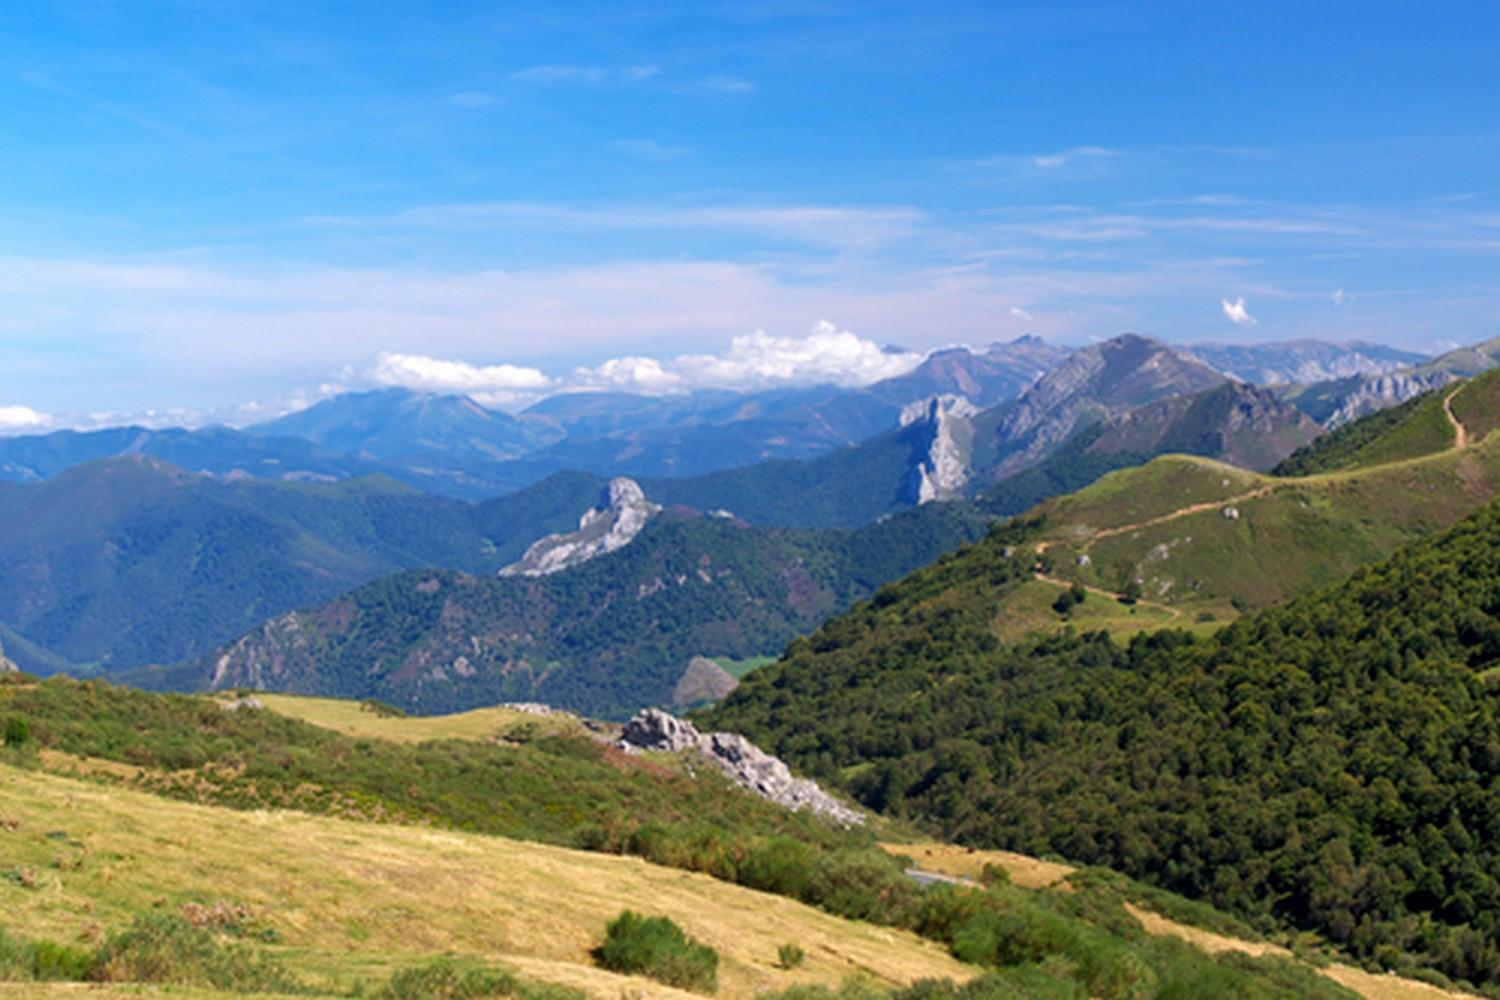 The lush green hills of the Cantabrian mountains